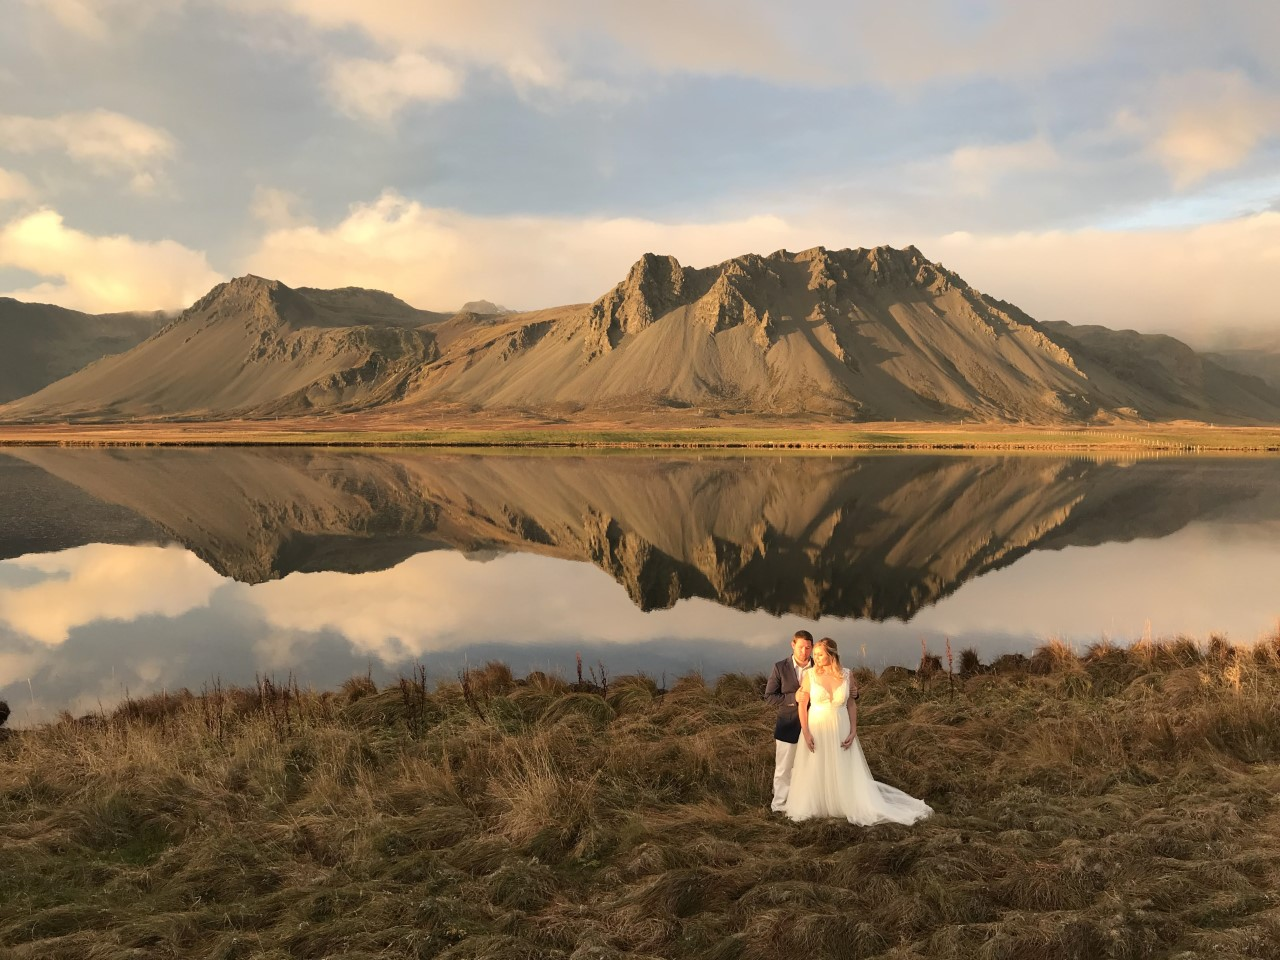 Destination Wedding Photo